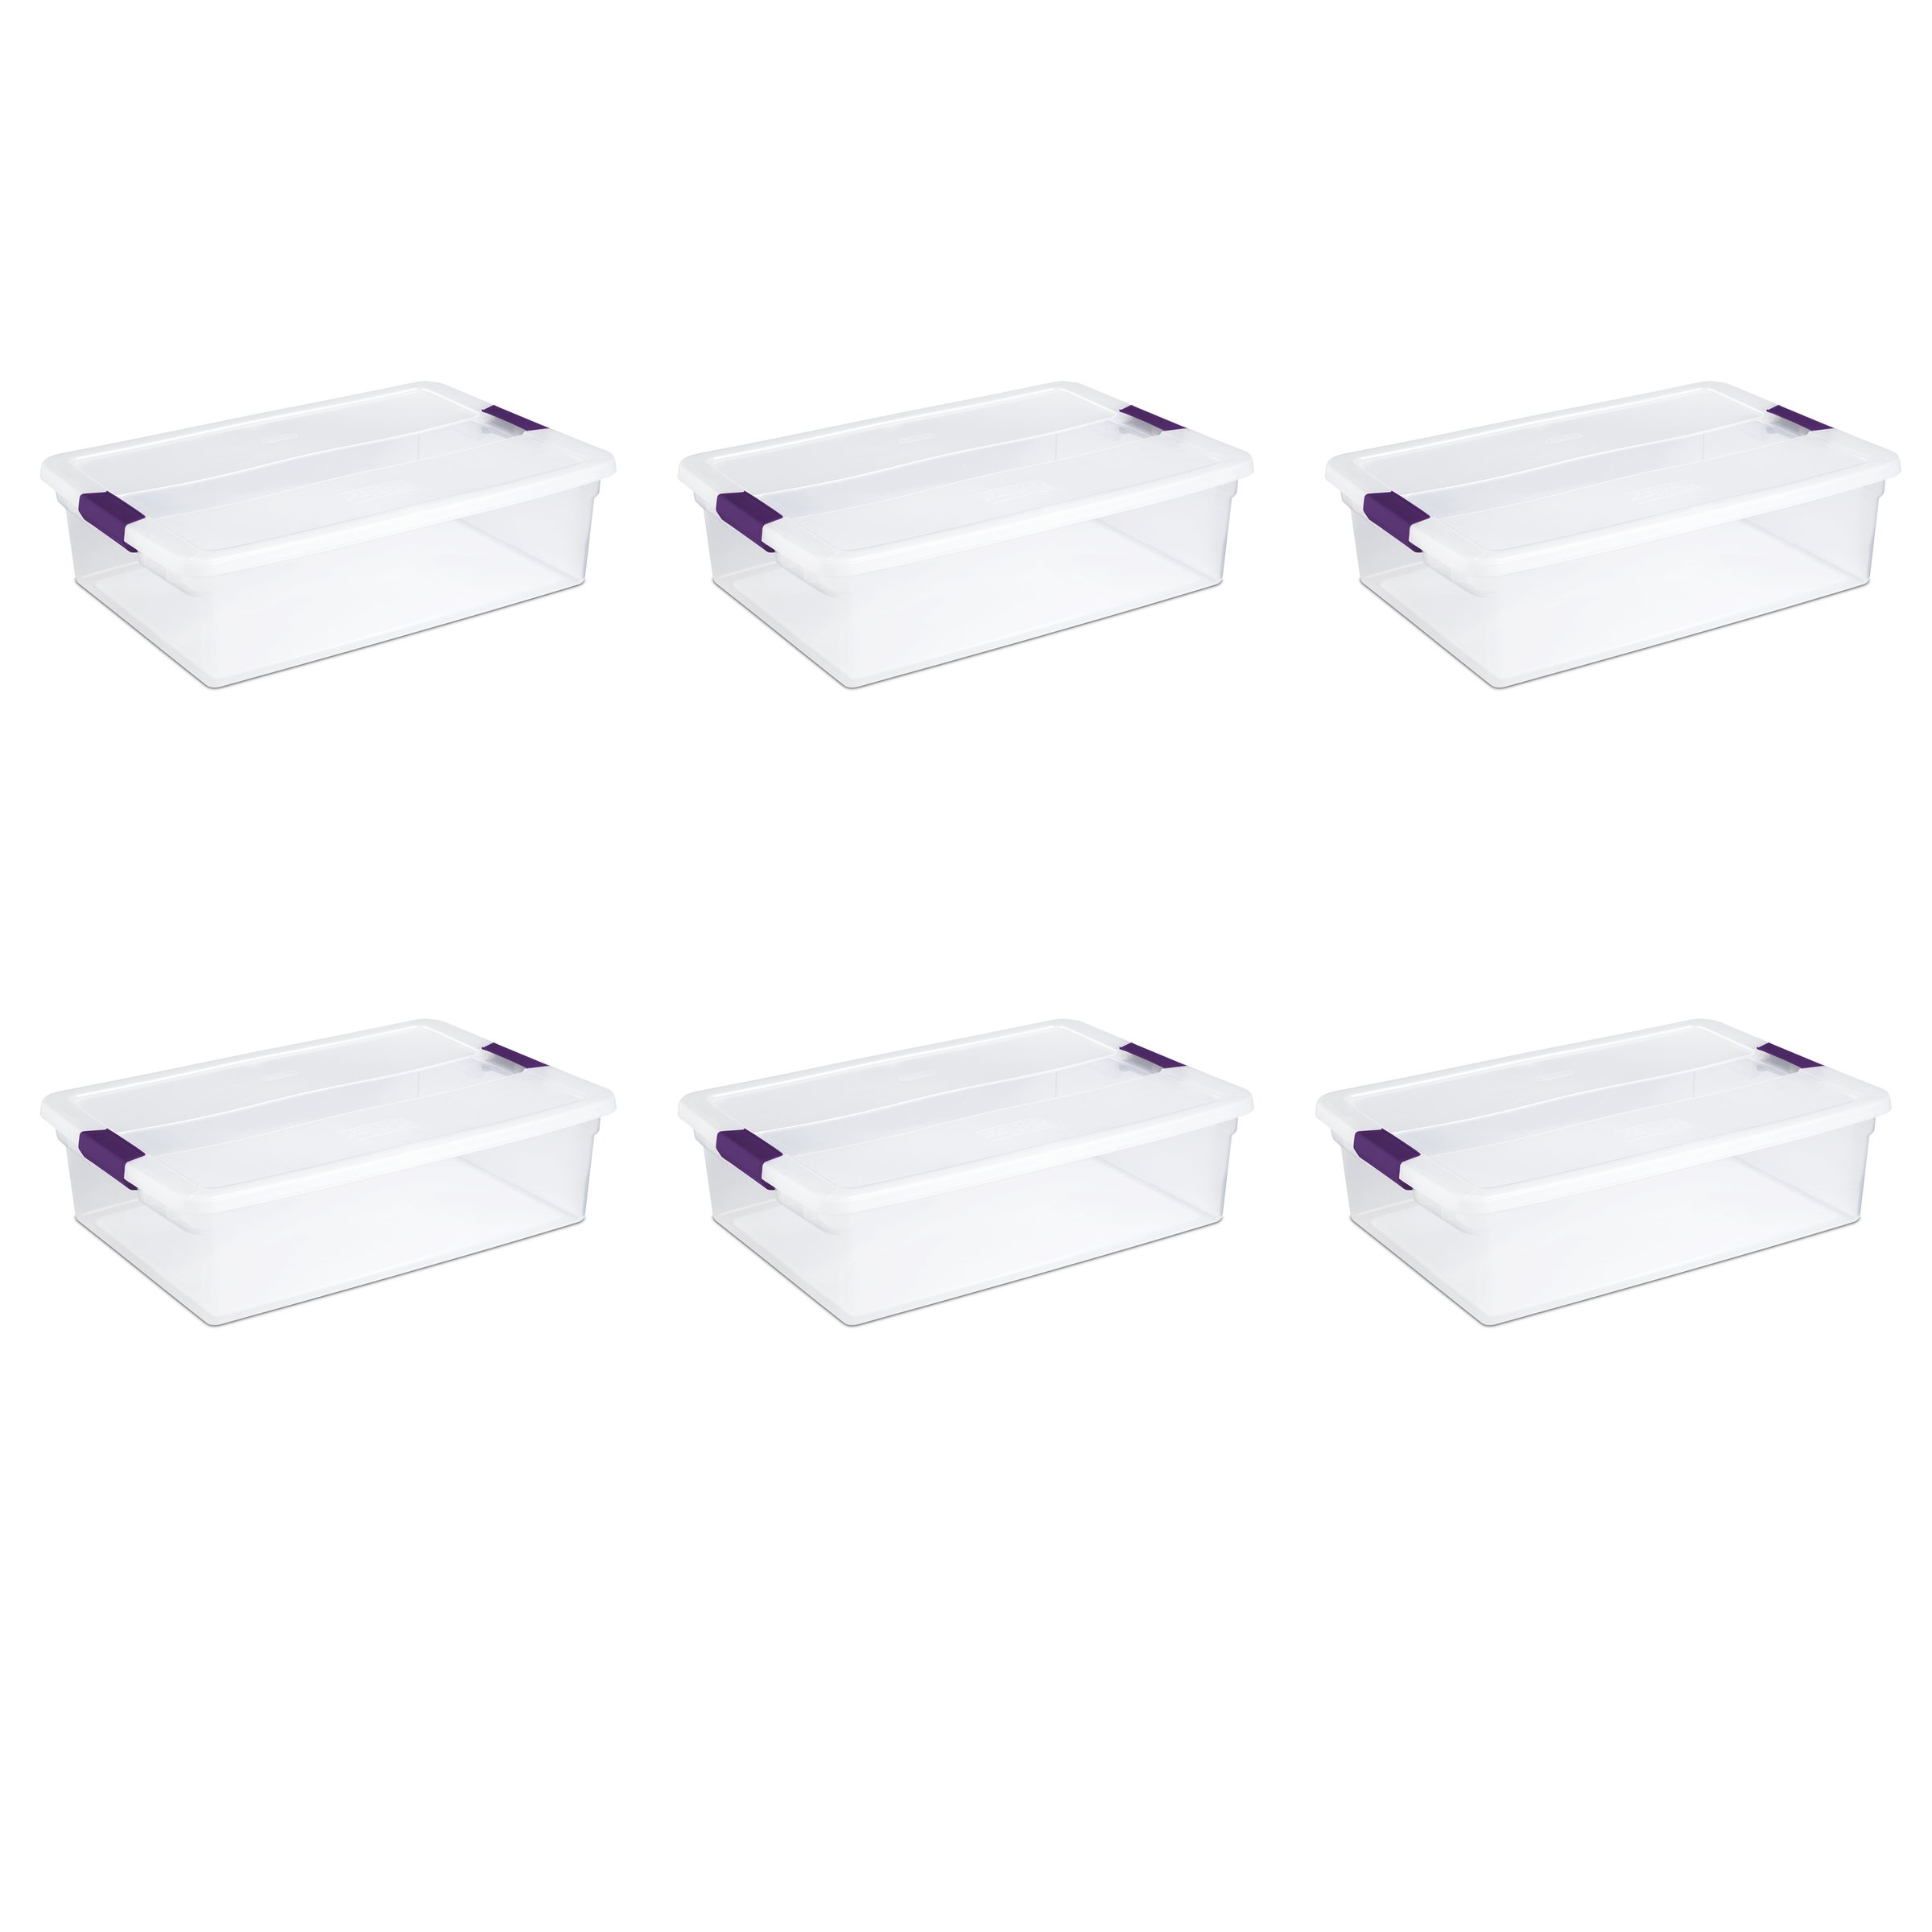 Sterilite 17551706 32 Quart/30 Liter ClearView Latch Box, Clear with Sweet Plum Latches, 6-Pack by STERILITE